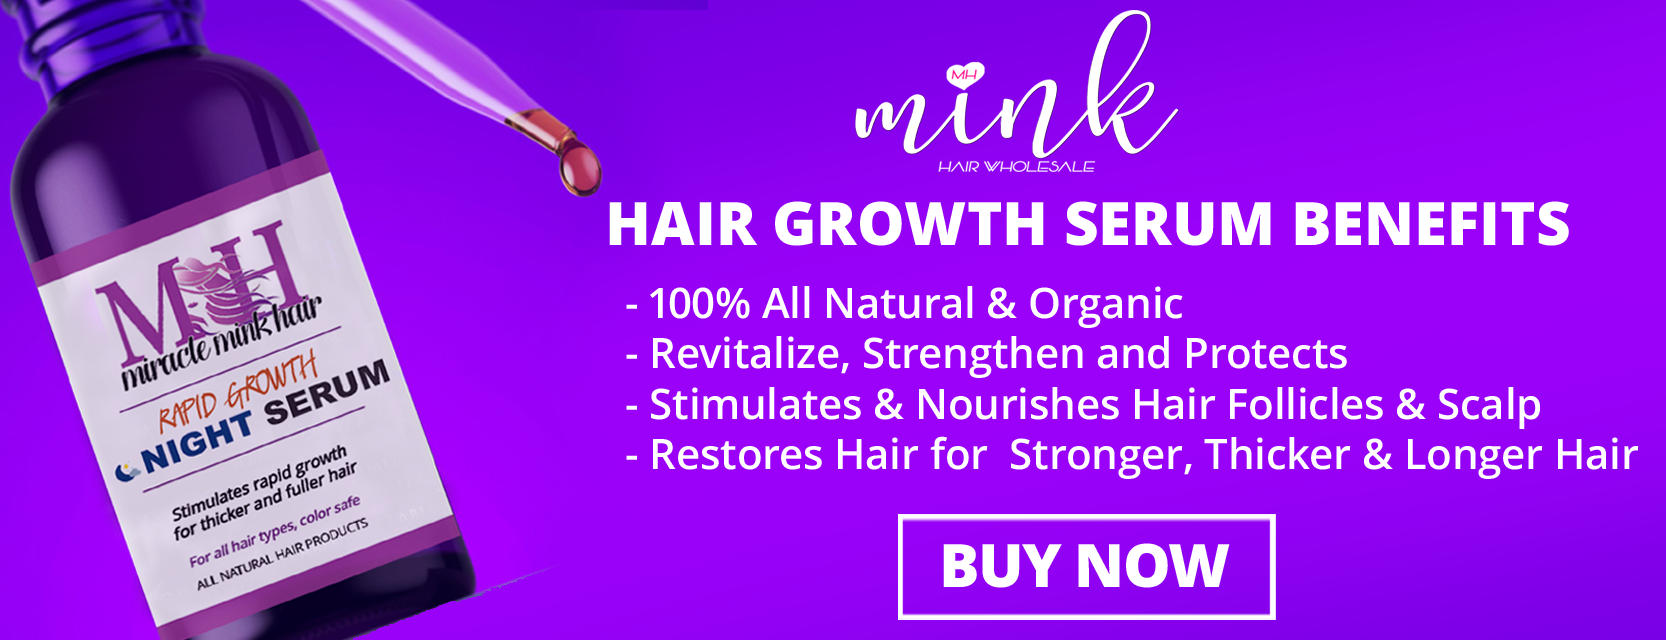 Miracle Mink Hair Growth Serum Benefits